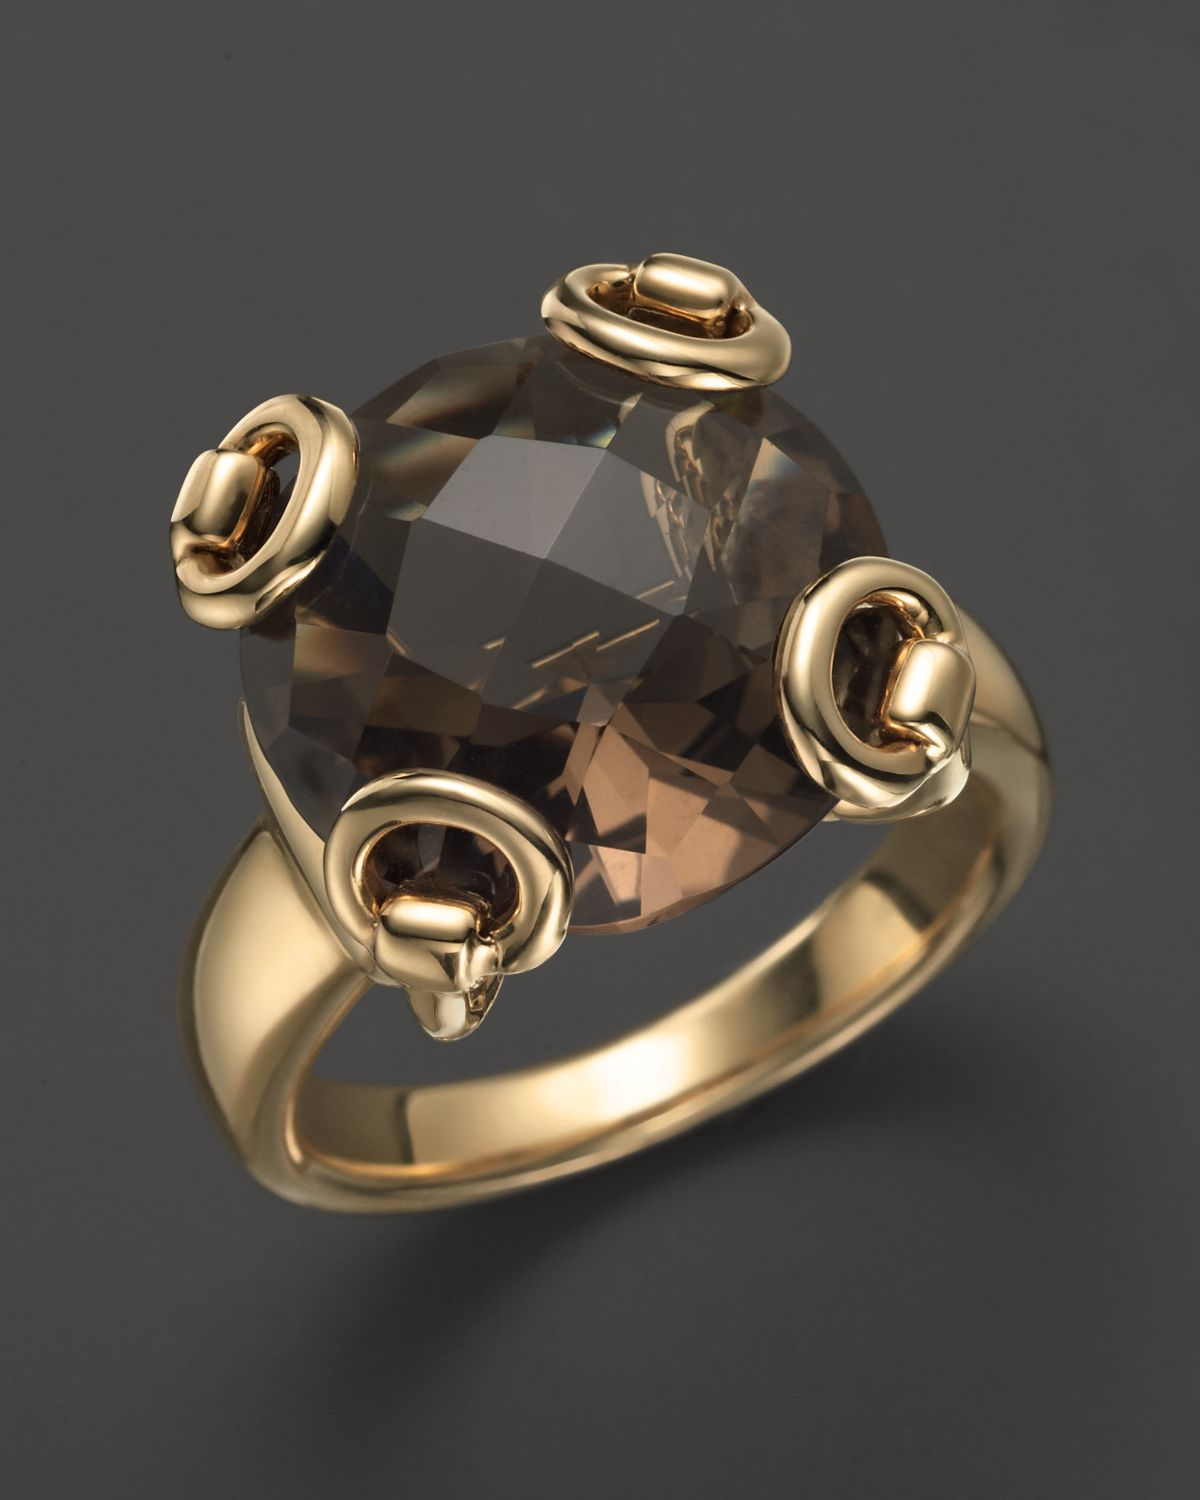 Lyst  Gucci 18k Yellow Gold Smokey Quartz Horsebit Cocktail Ring in Yellow